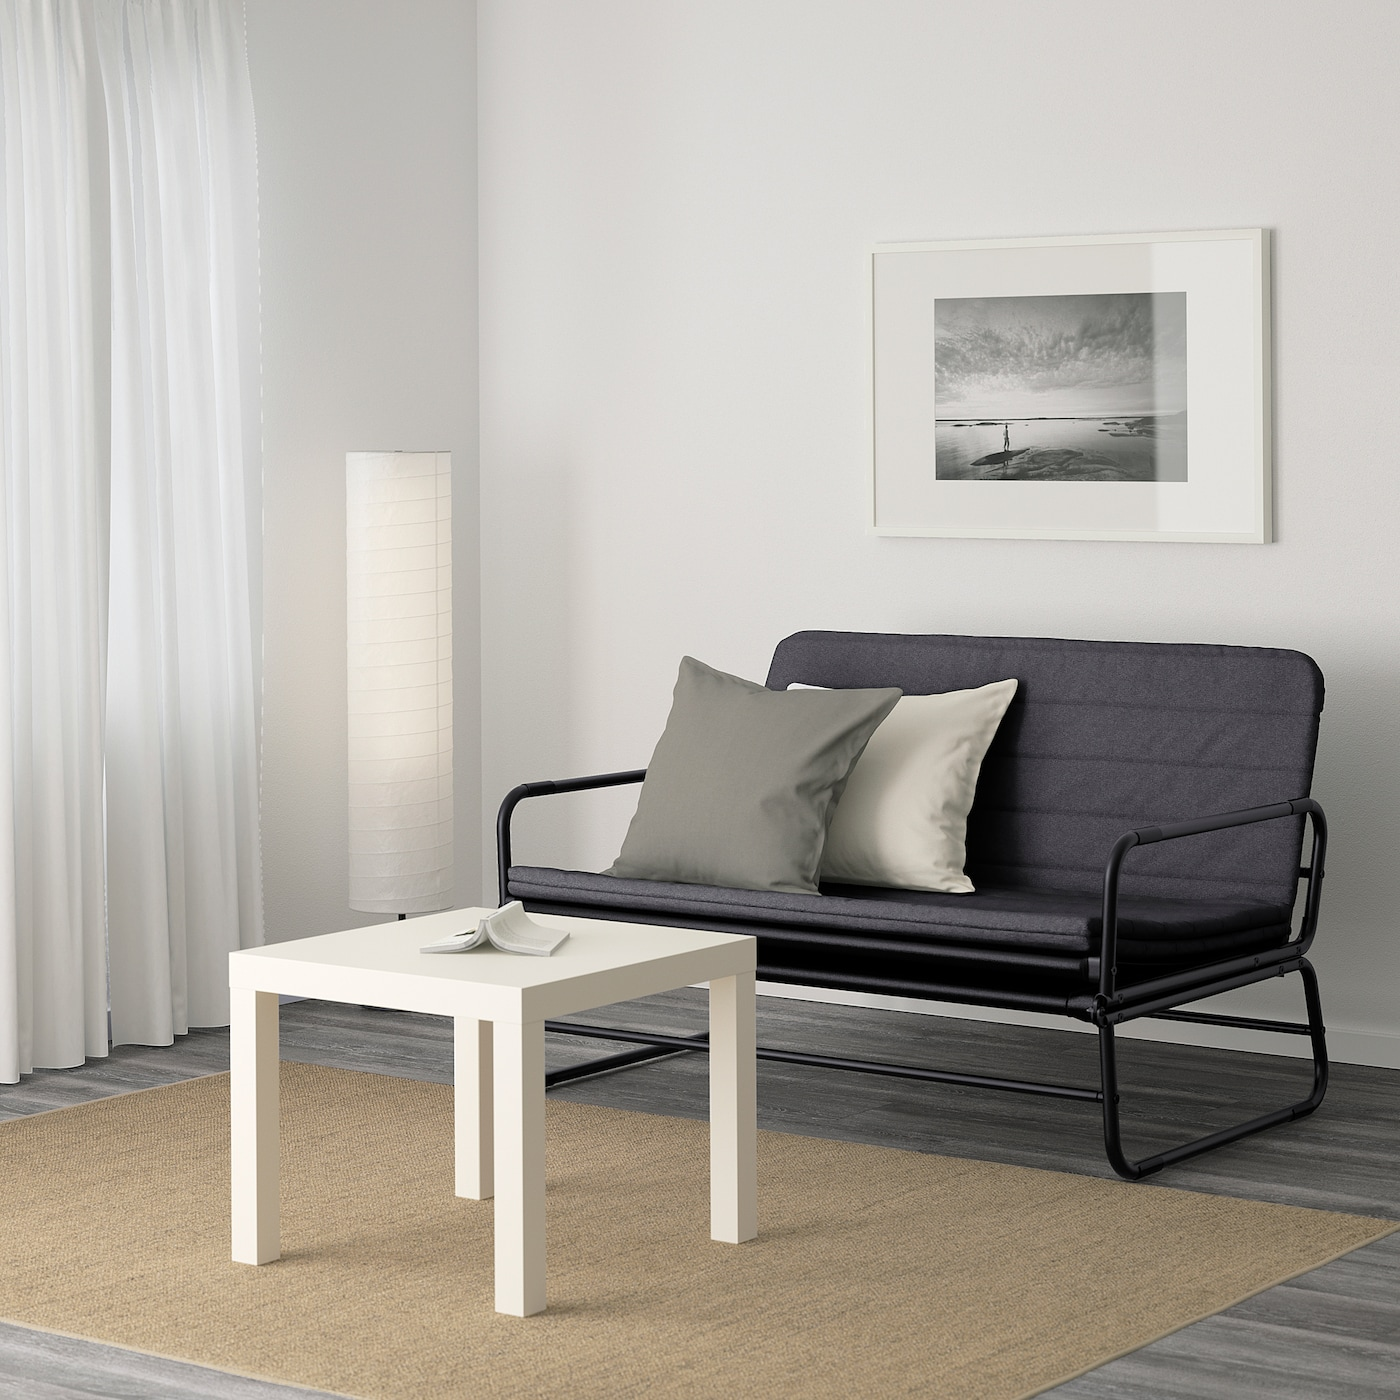 IKEA hammarn sofa bed grey is lightweight